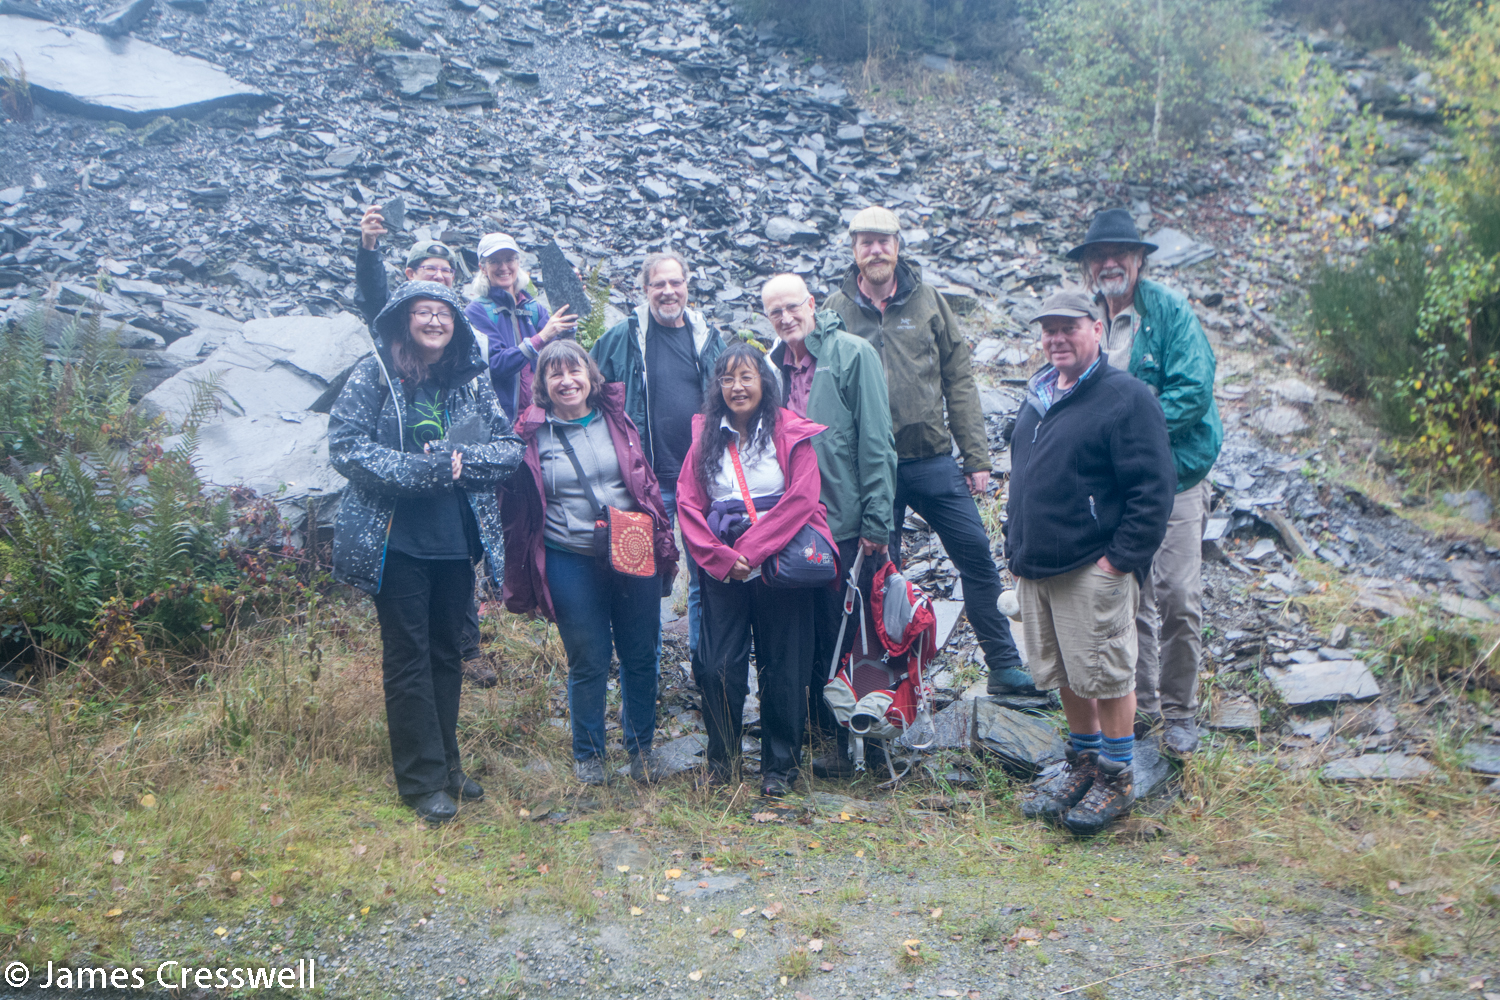 Group at fossil hunting site